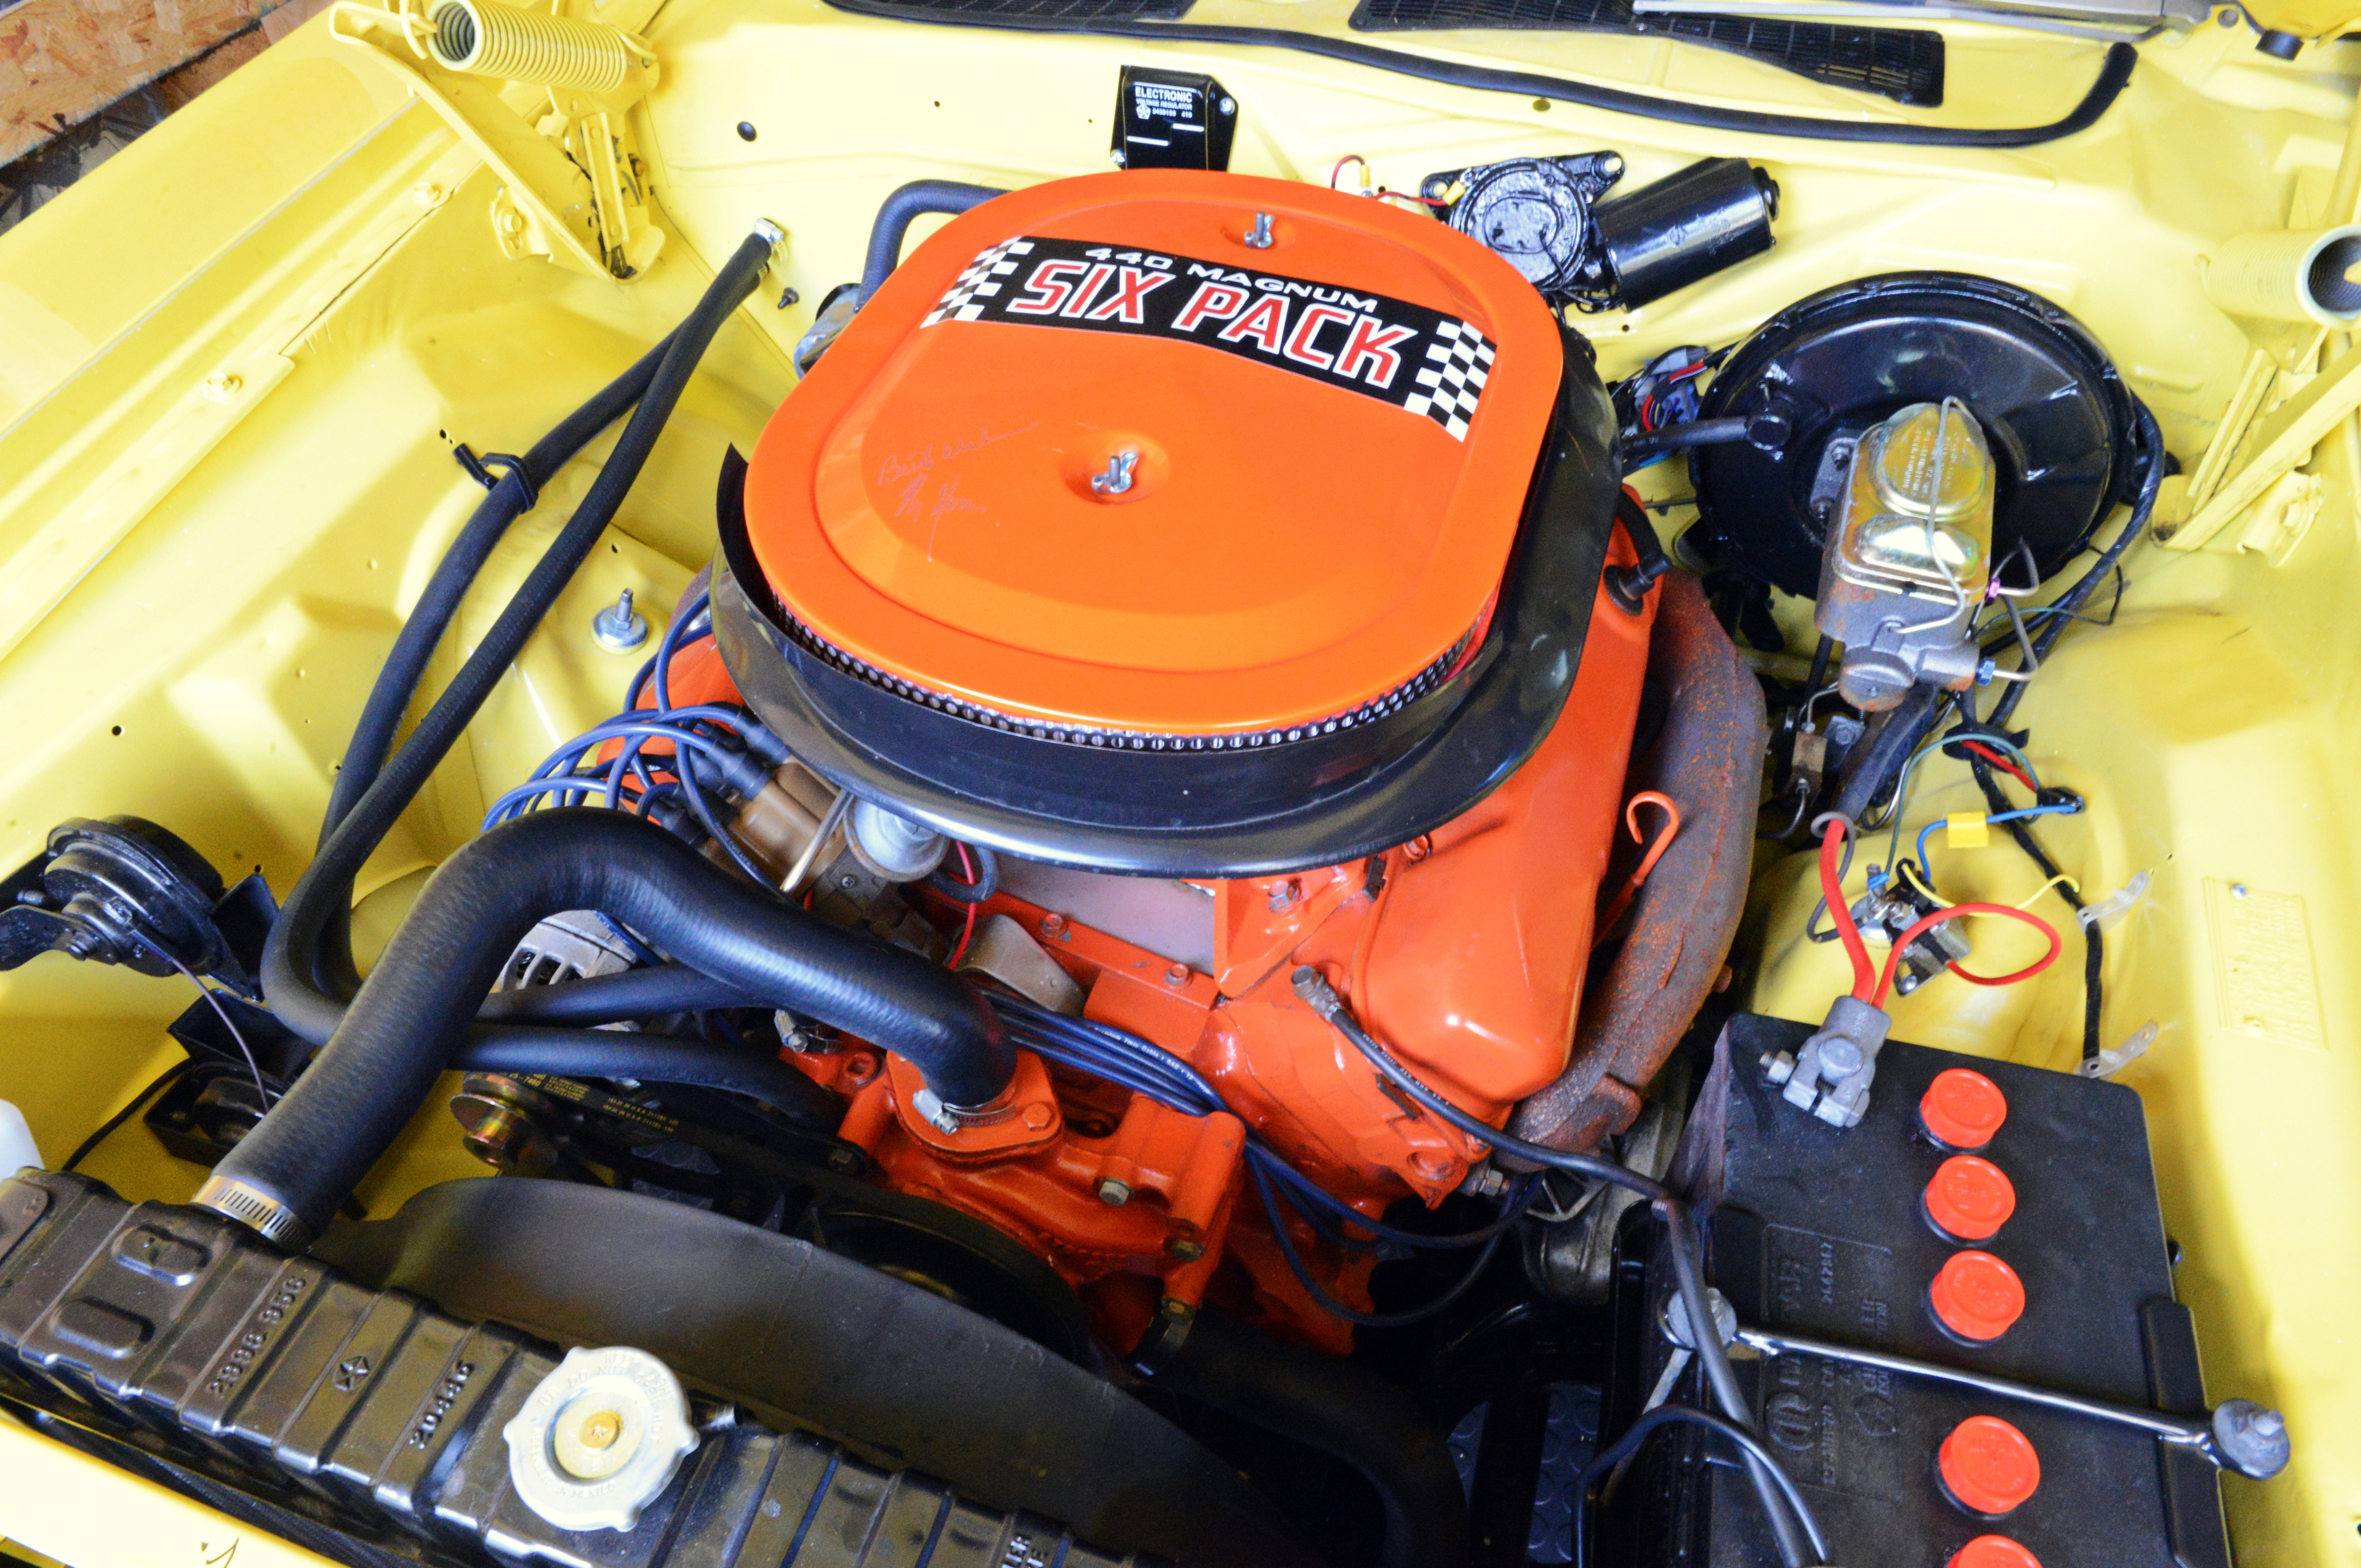 The Challenger's original 440 Six Pack motor had been replaced by a race motor early in the car's life. Miraculously, the original motor was located in a small speed shop not far from Grand Spaulding Dodge, where the car was originally sold.